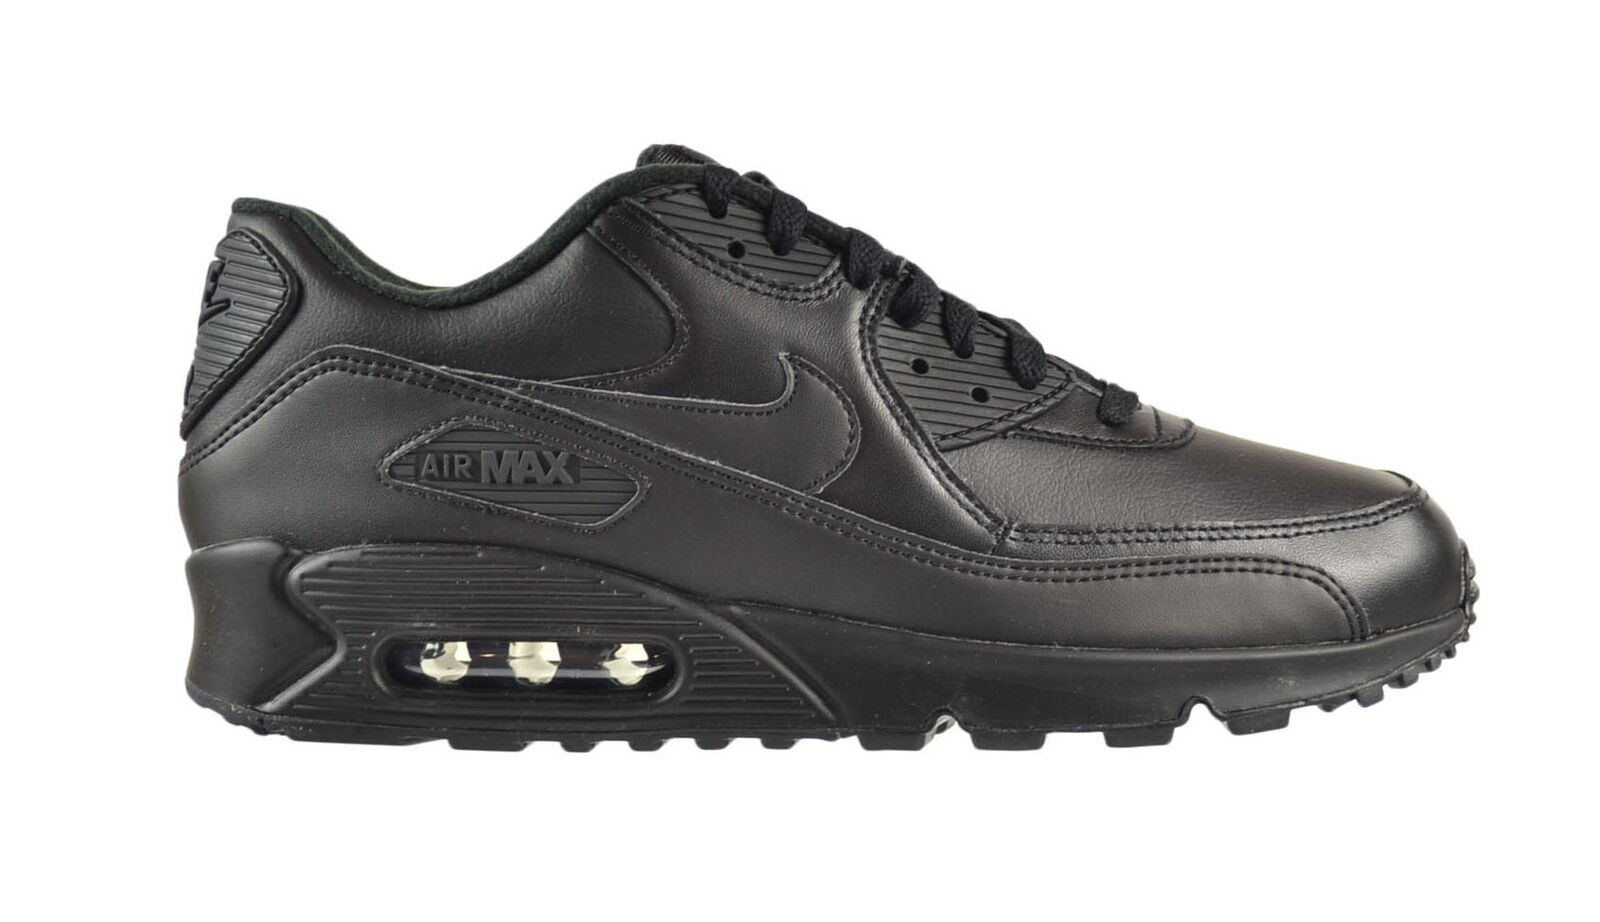 Nike Air Max 90 Leather Men's Shoes Black/Black 302519-001 Brand discount